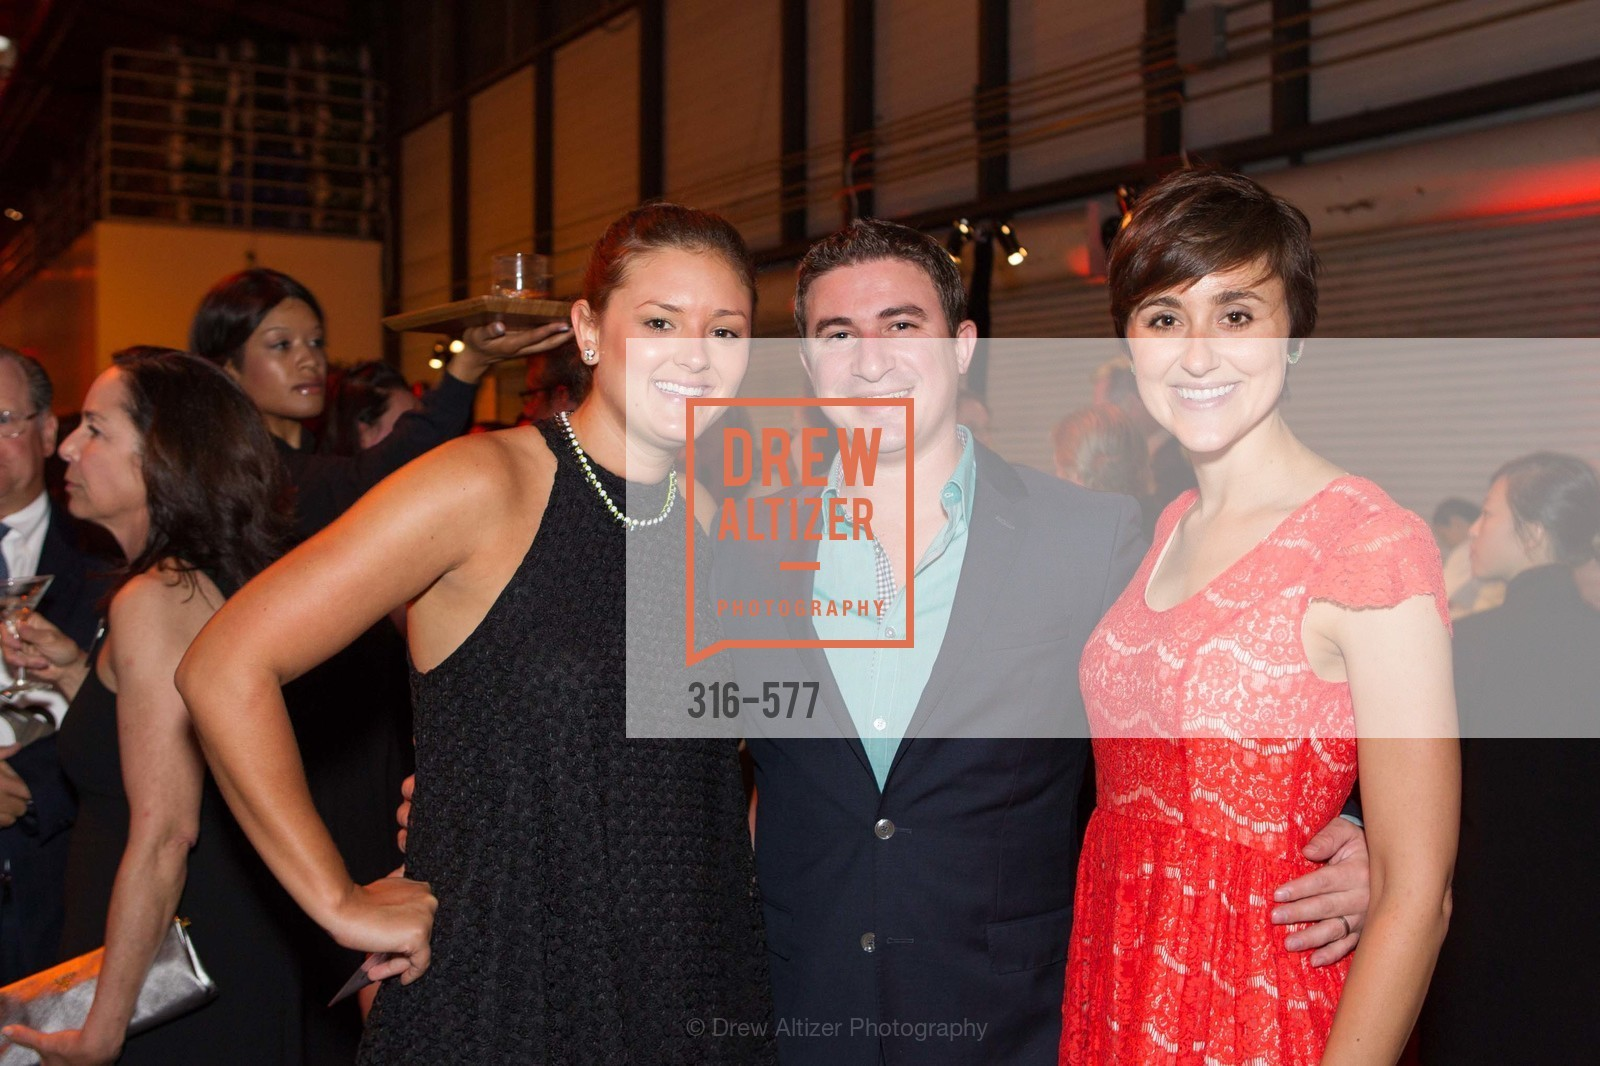 1400927-Marin-Food, SF-MARIN FOOD BANK One Big Table Gala, September 27th, 2014, Photo,Drew Altizer, Drew Altizer Photography, full-service agency, private events, San Francisco photographer, photographer california